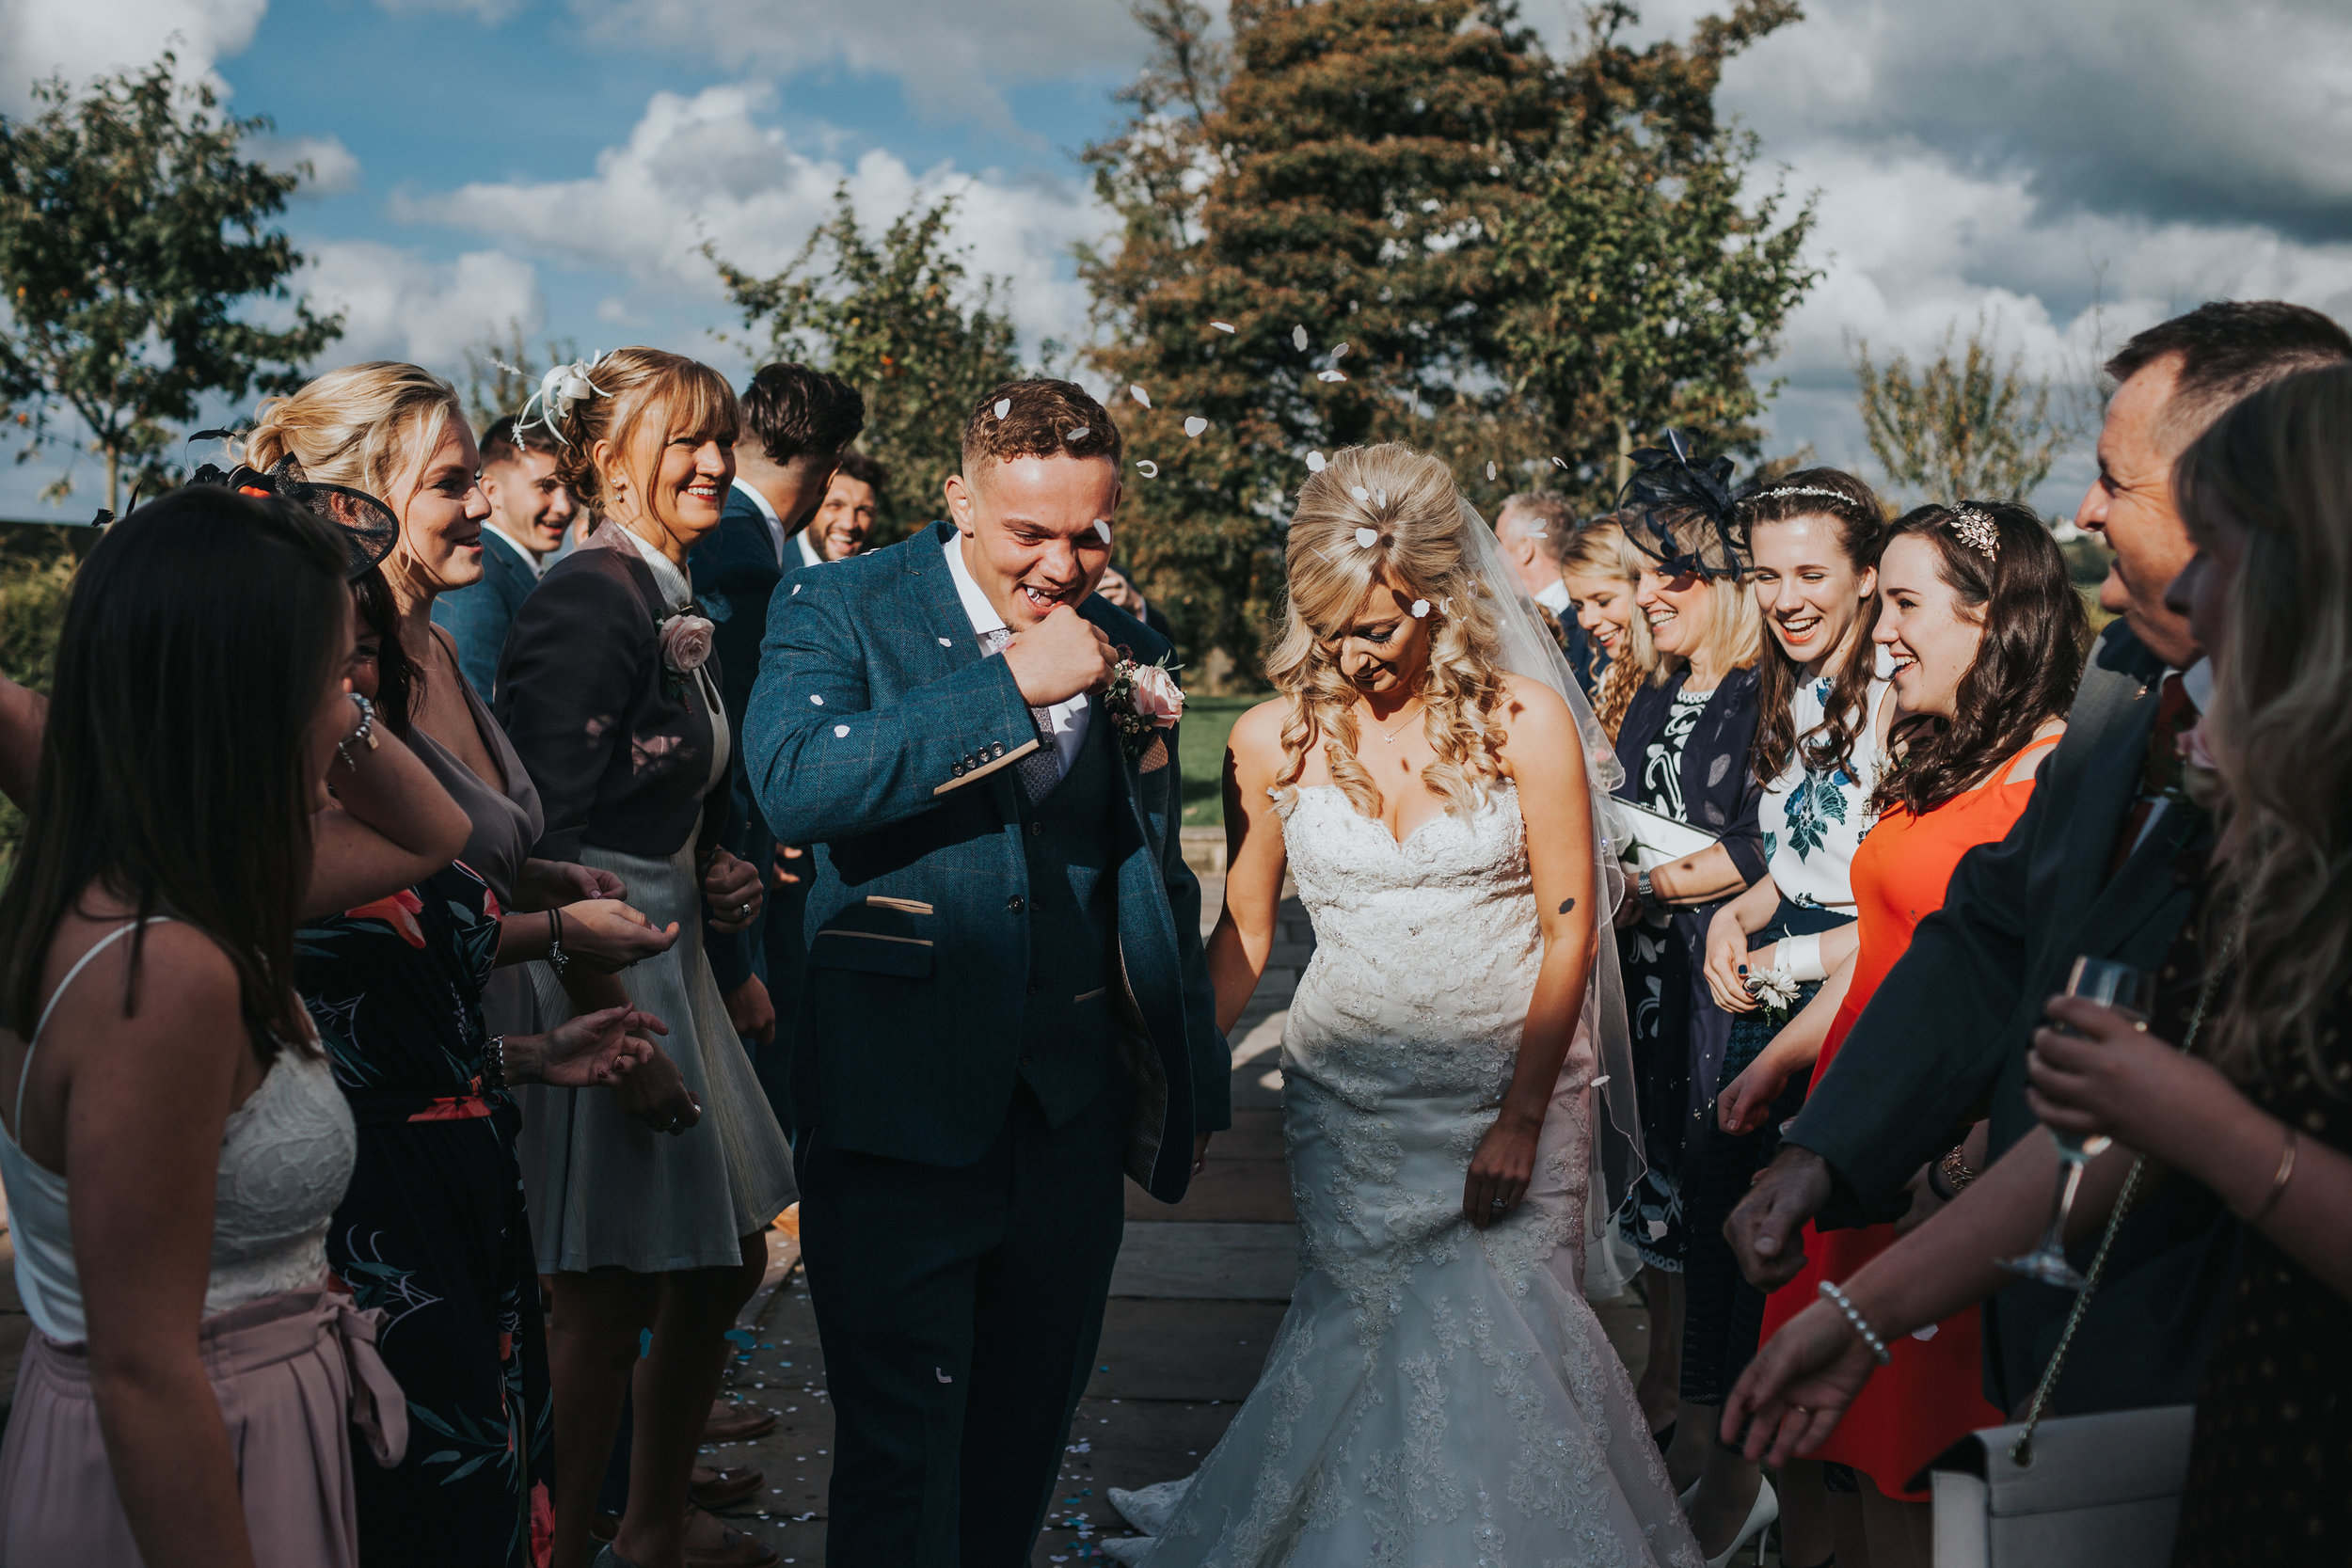 Groom gets confetti in his mouth.